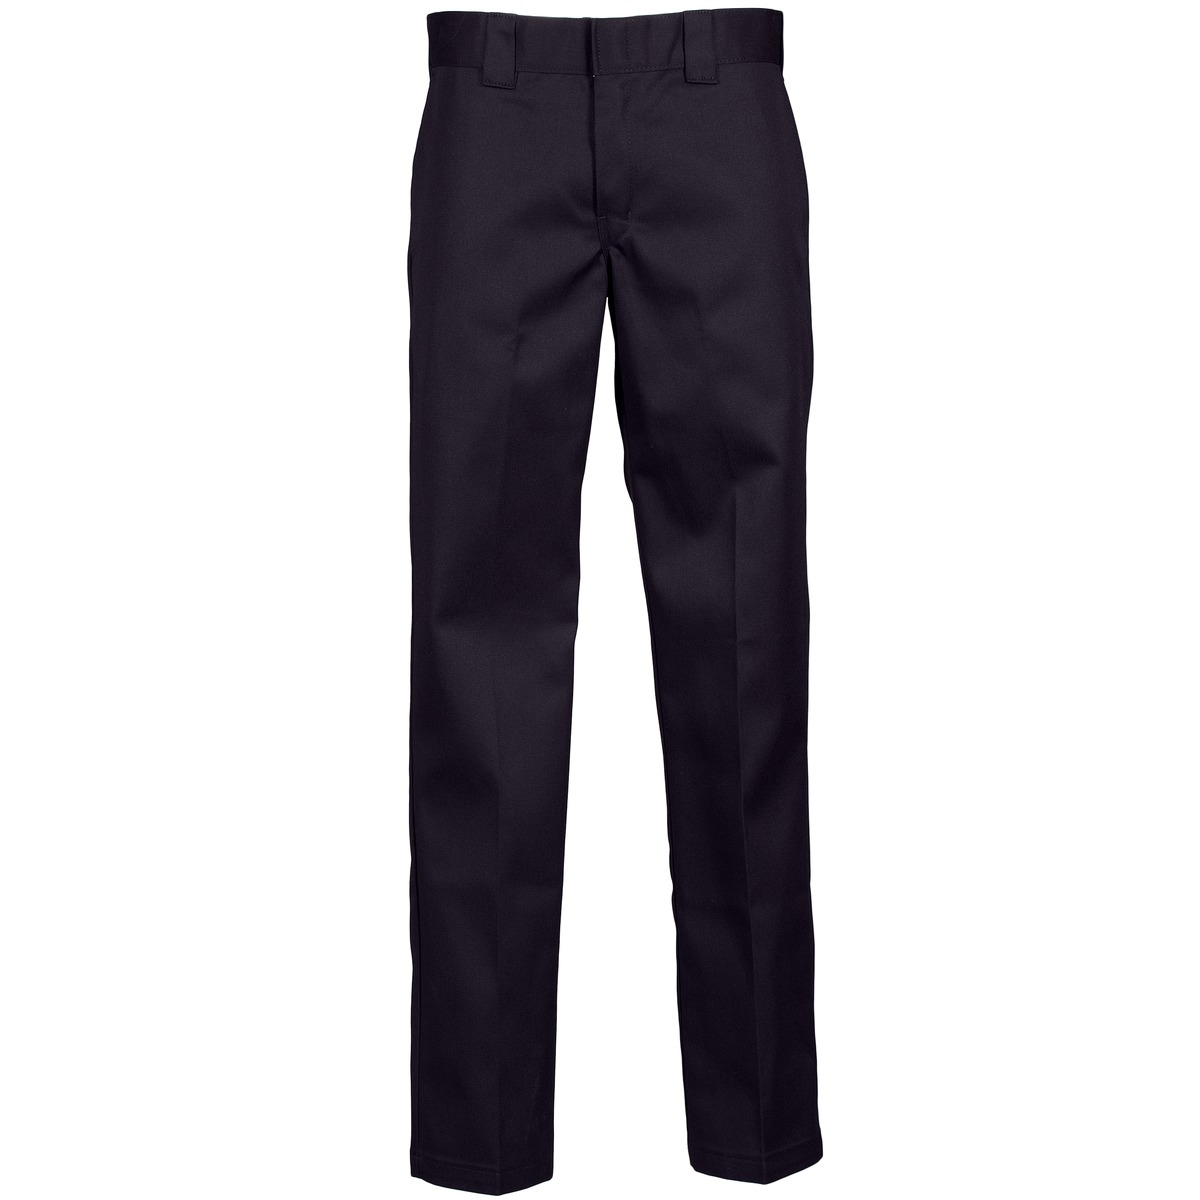 Dickies WORK PANT Black